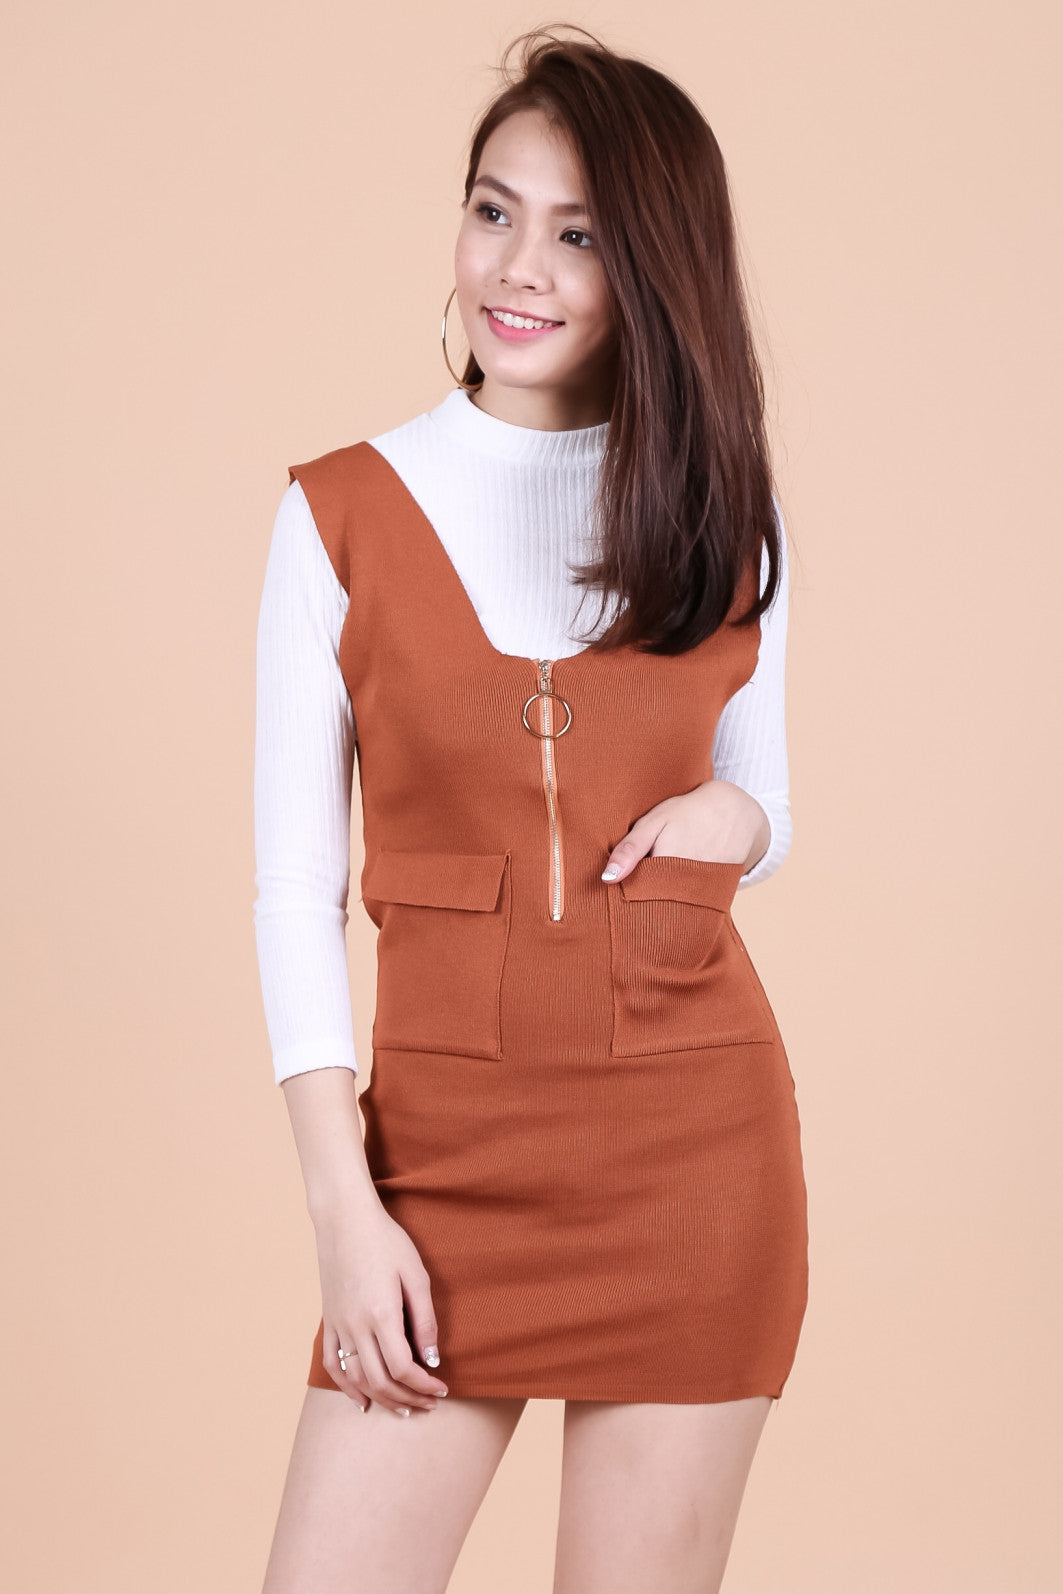 RING ZIPPER KNIT DUNGAREE DRESS IN CAMEL - TOPAZETTE